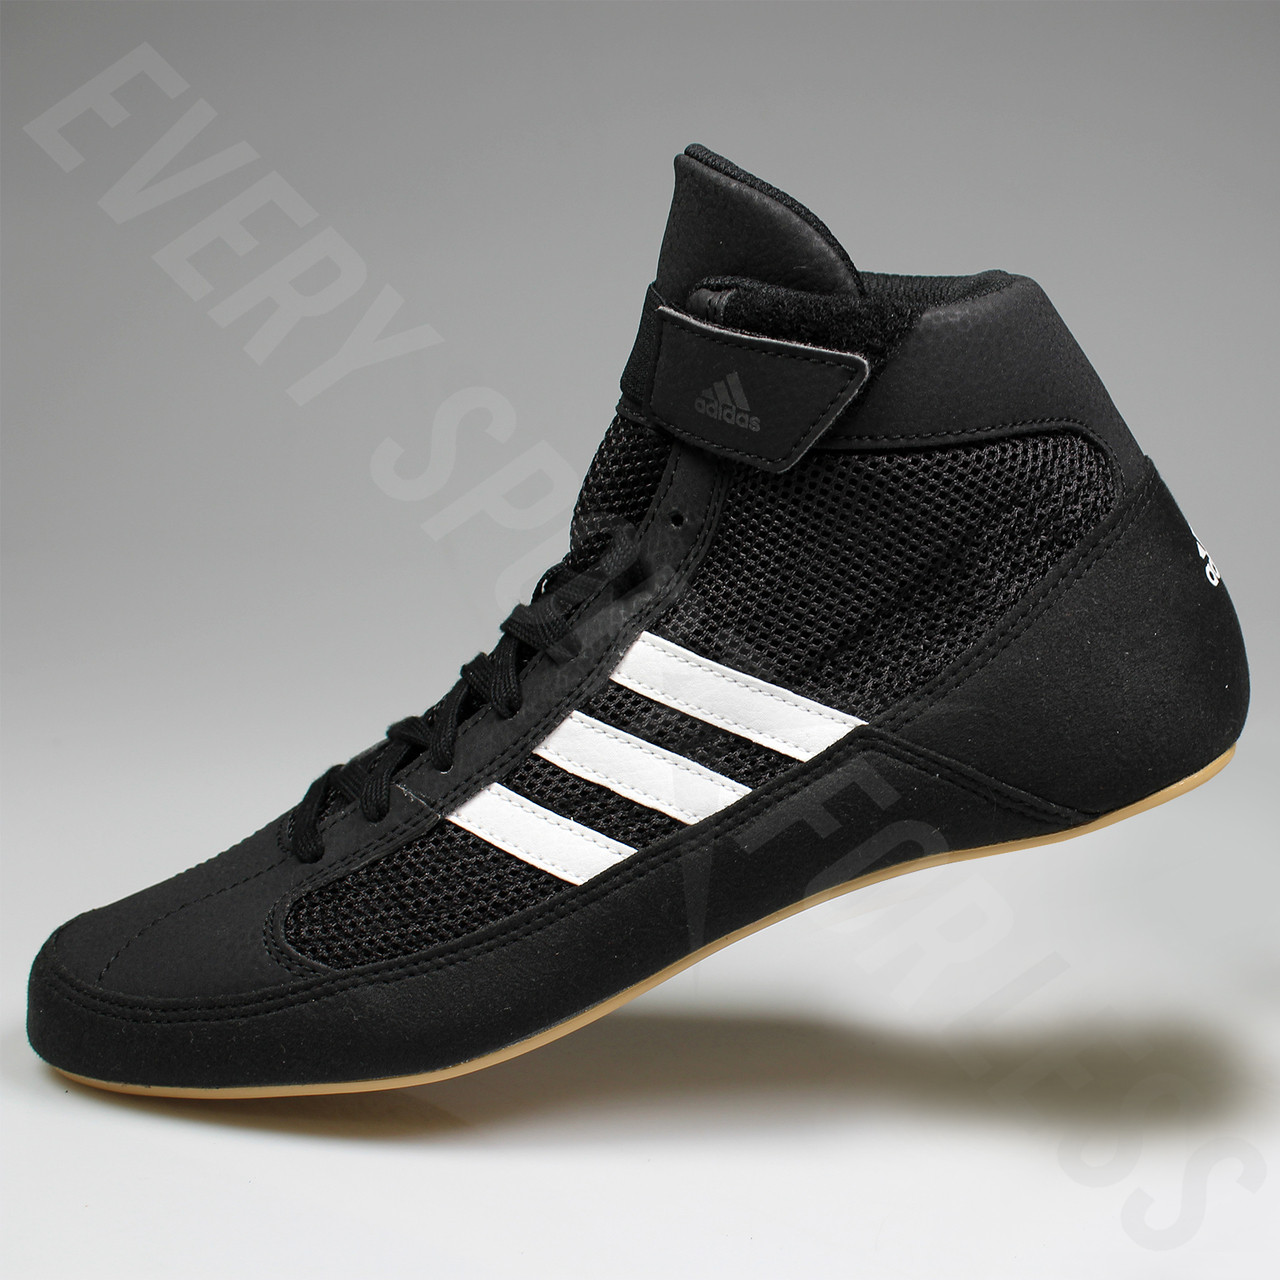 7c4fdd09ae745 Adidas HVC 2 Adult Wrestling Shoes AQ3325 - Black, White